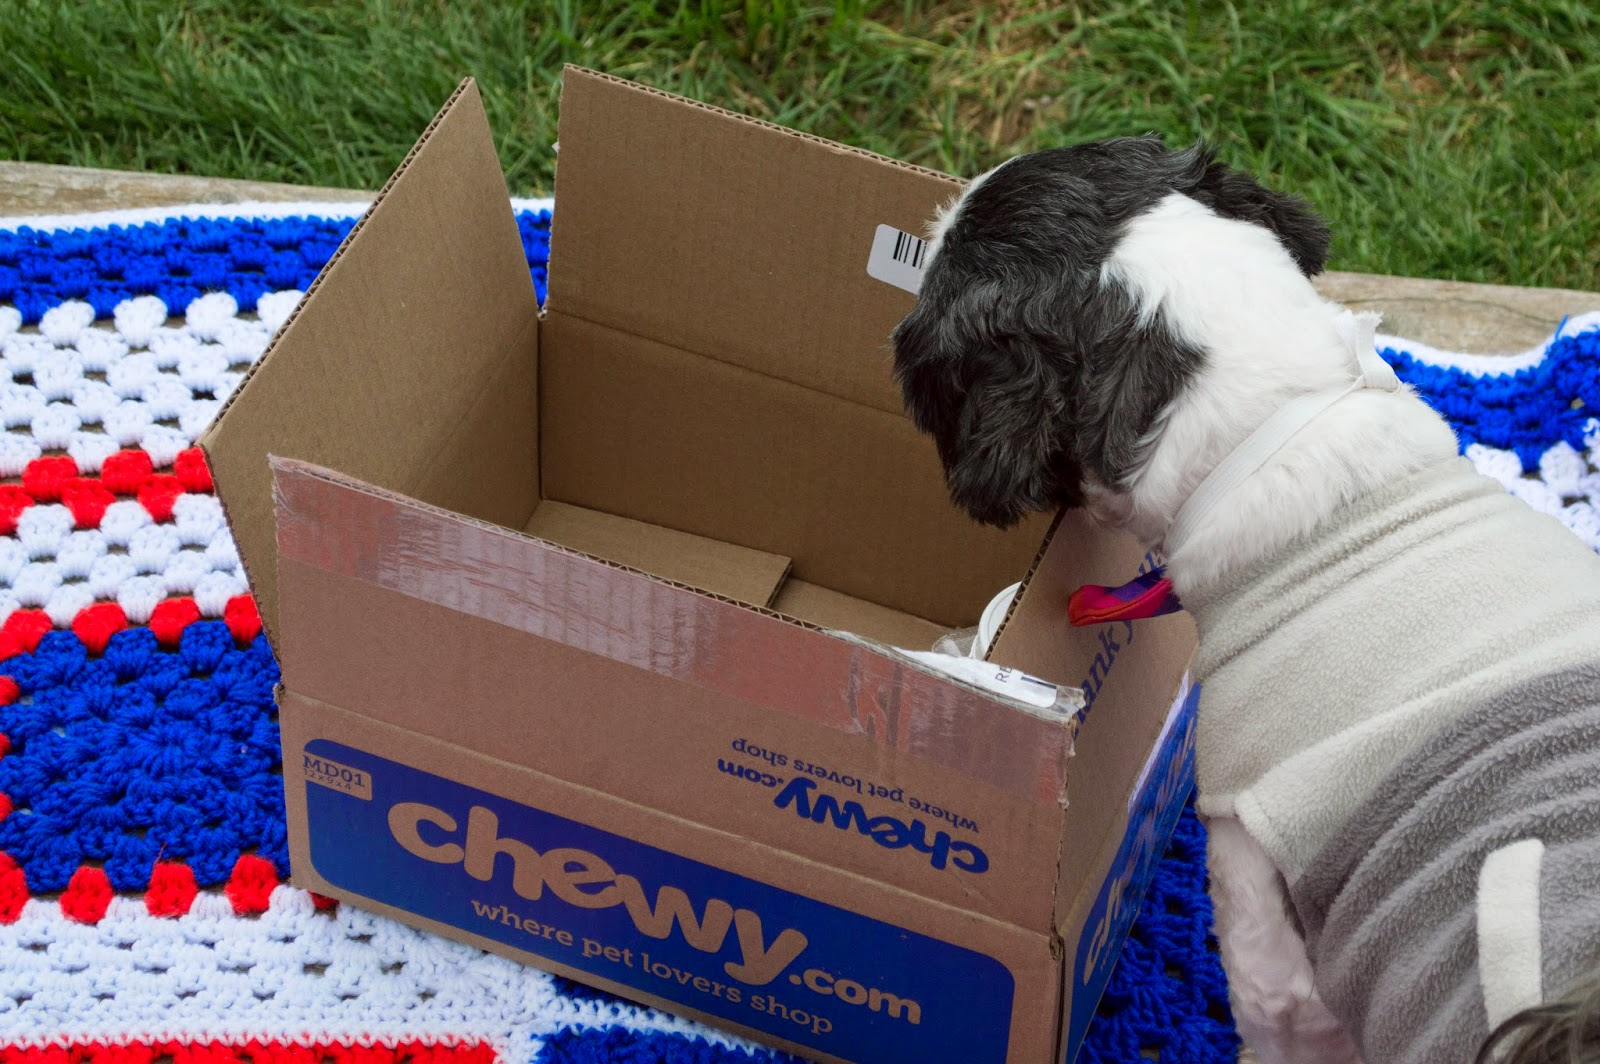 The value to Shoppers of the Chewy.com Buy Remains to be Seen.